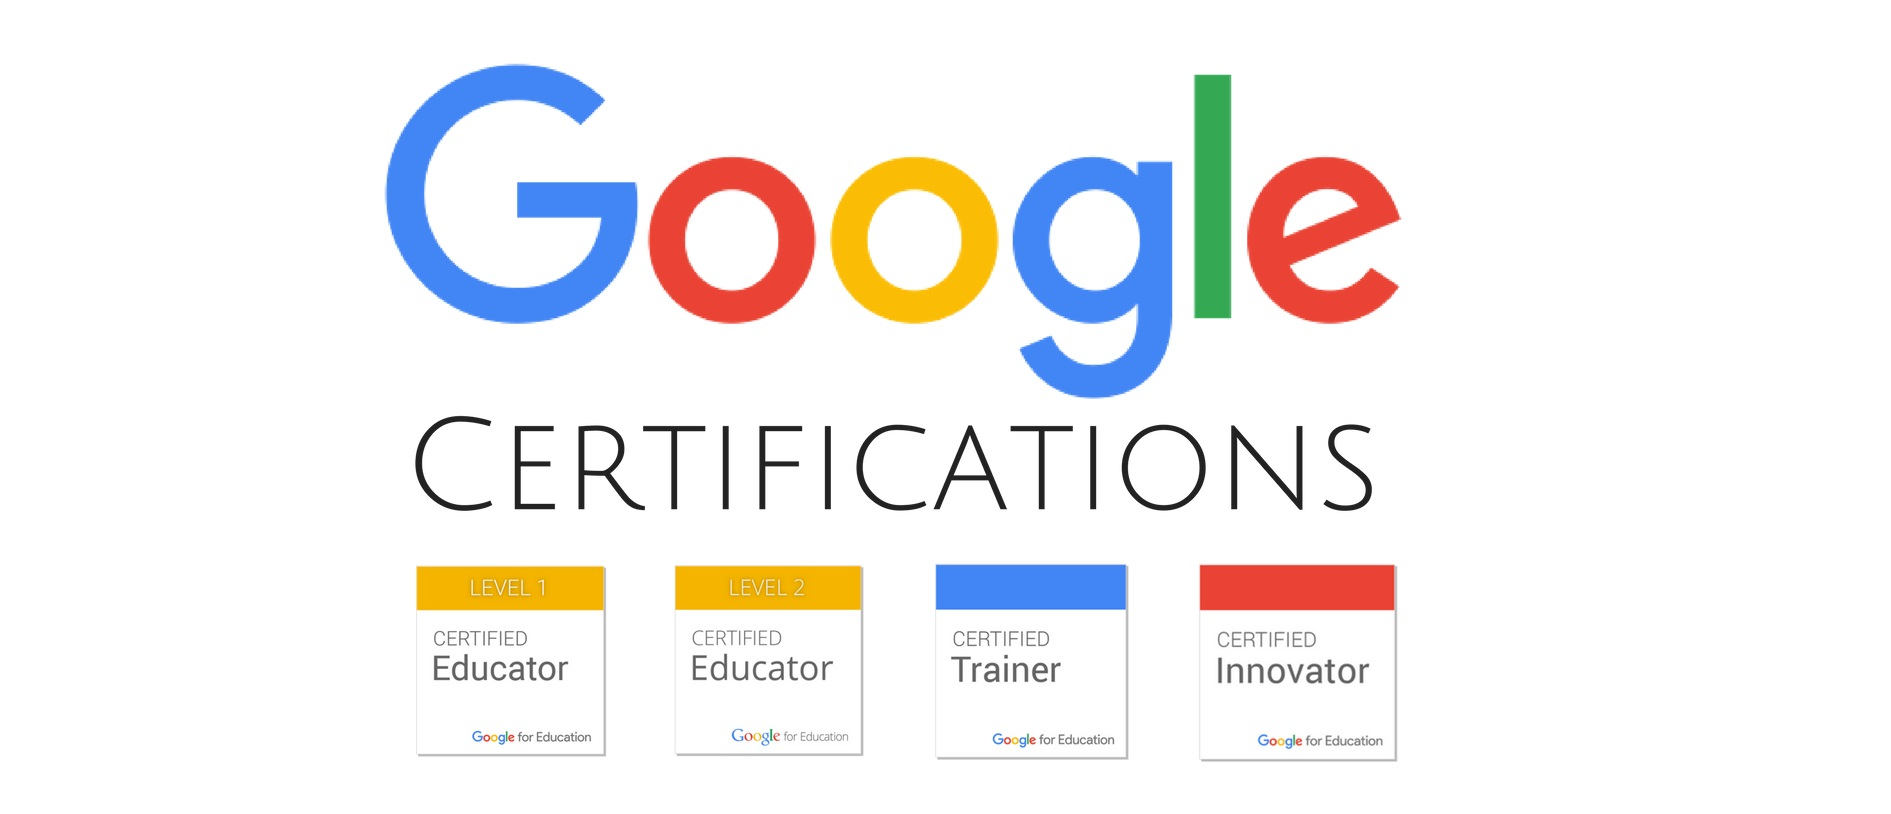 Education on Air: Level up with Google Certifications